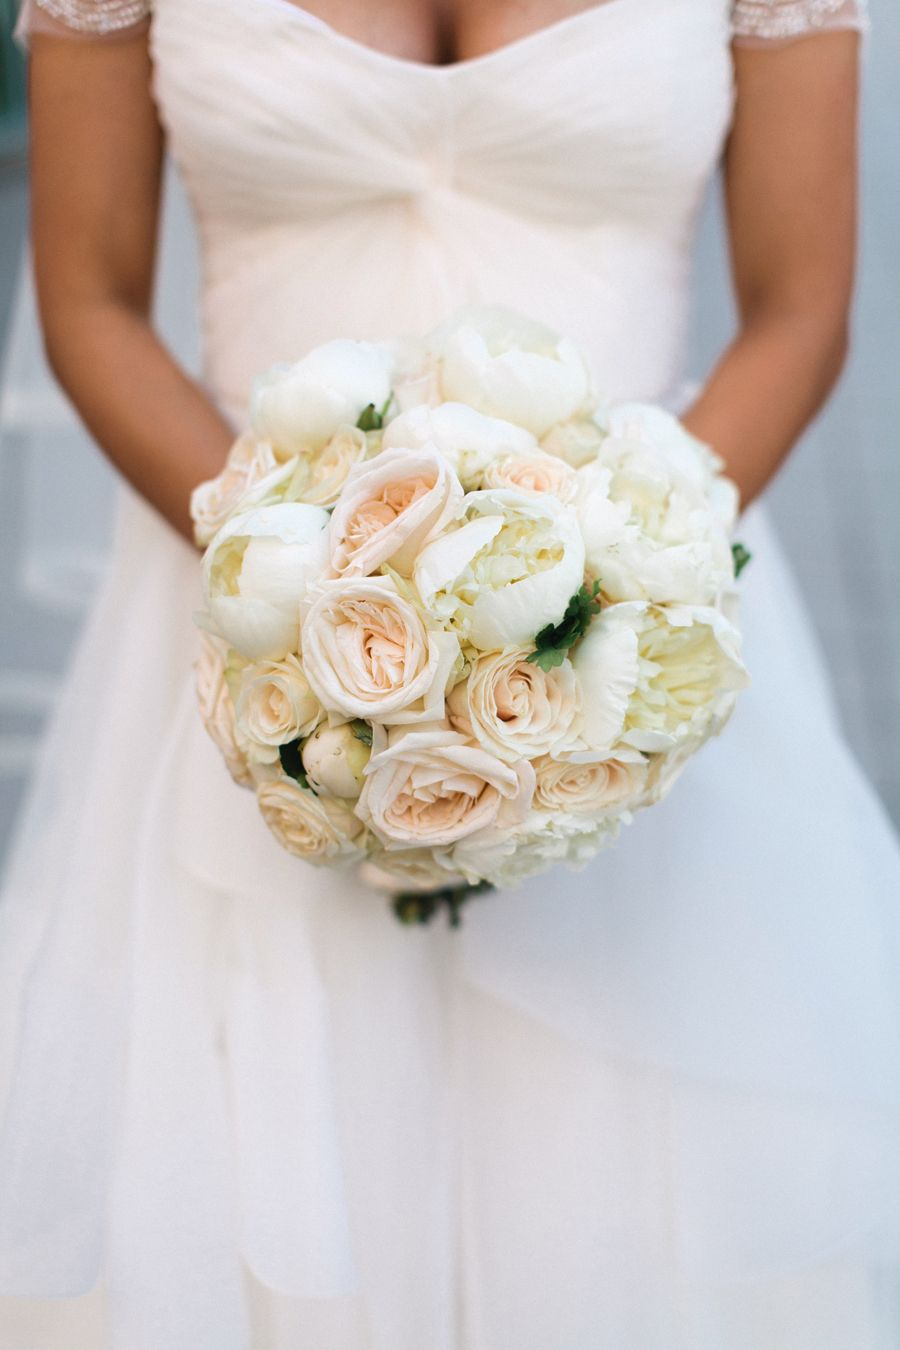 Pale Pink and Cream Rose Bouquet | photography by http://megruth.com/